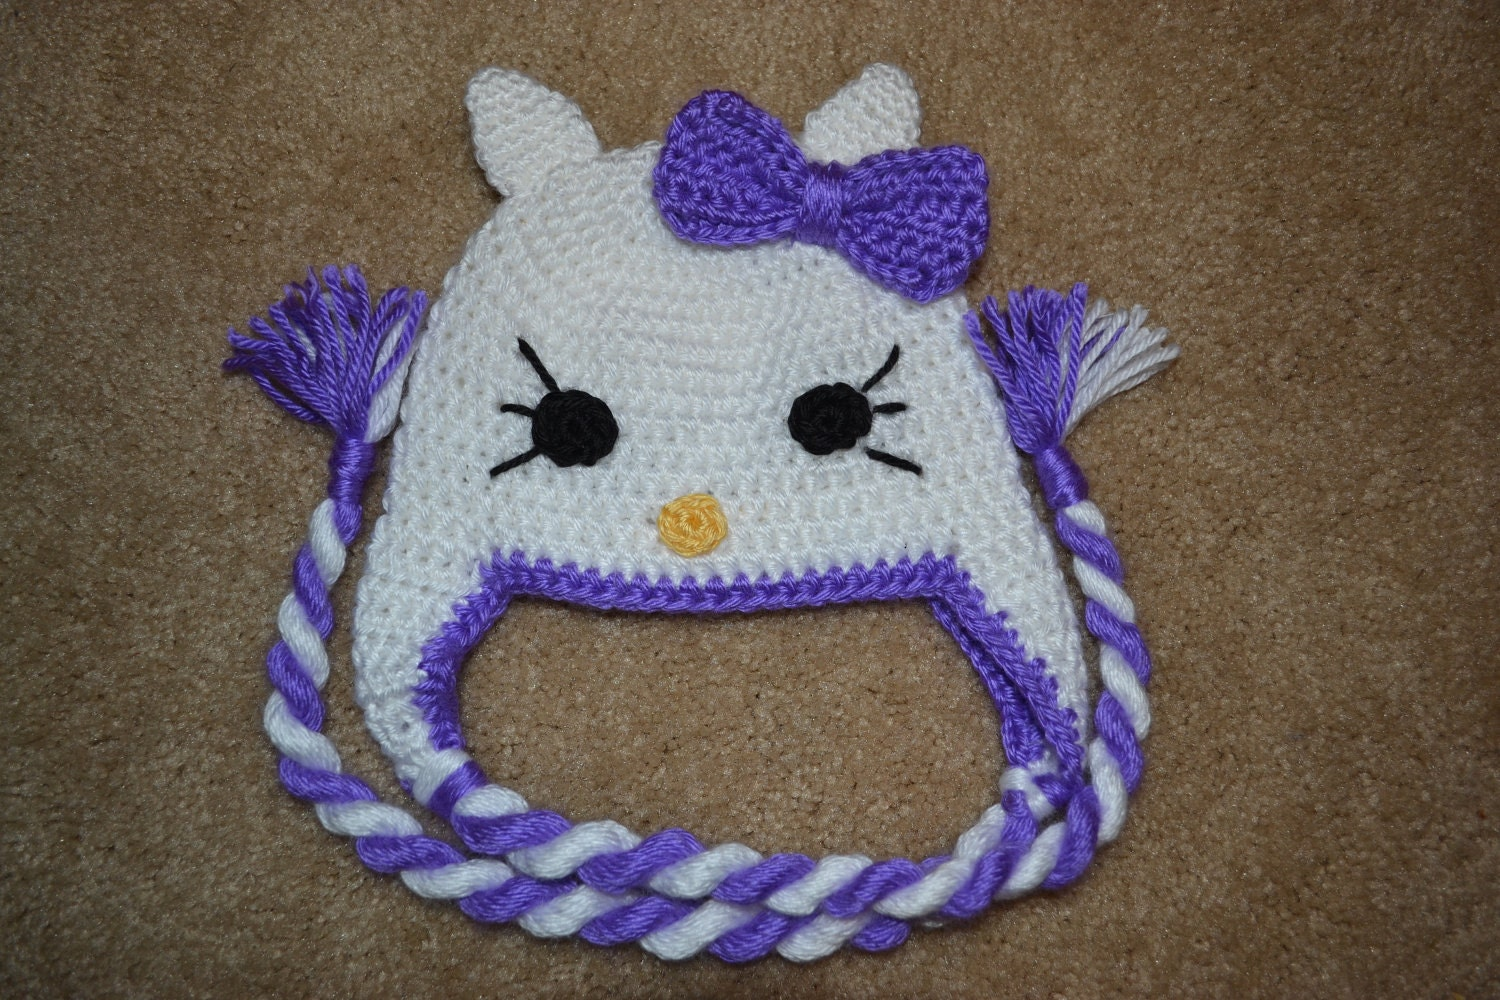 Crochet Hello kitty hat by slvb26 on Etsy